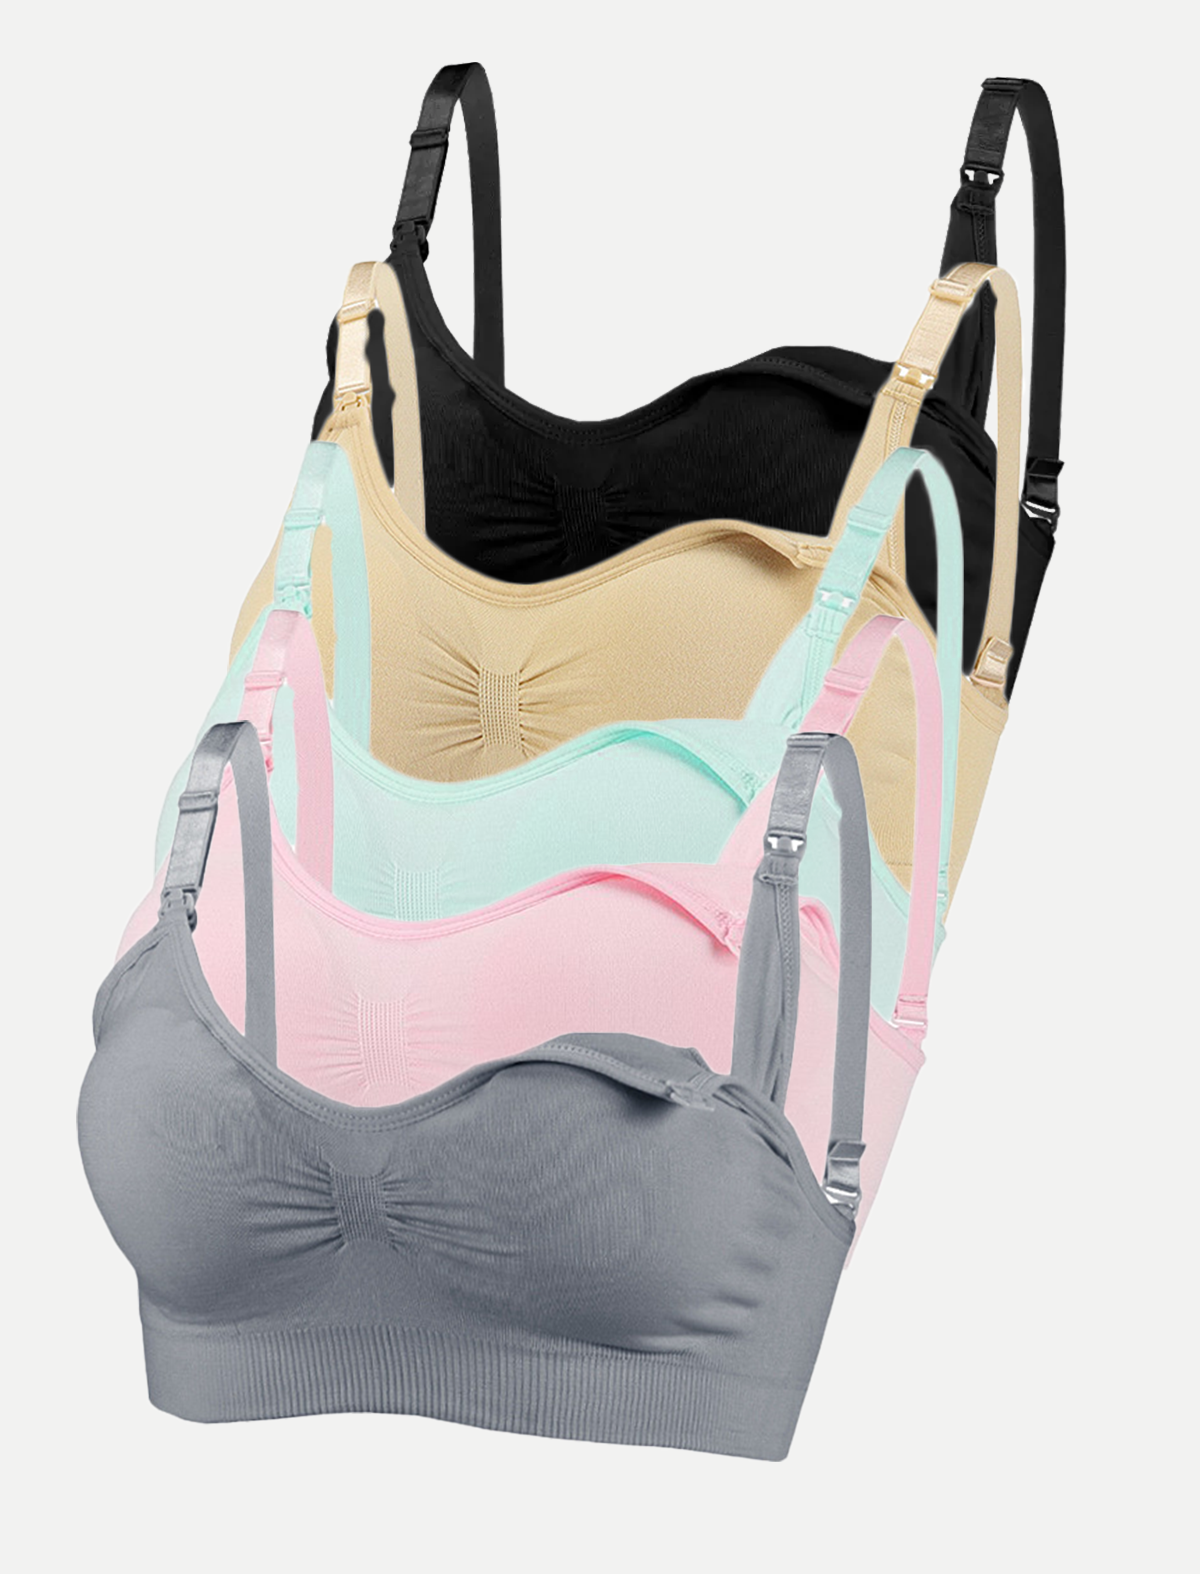 Comfy 2-in-1 Maternity and Nursing Bras